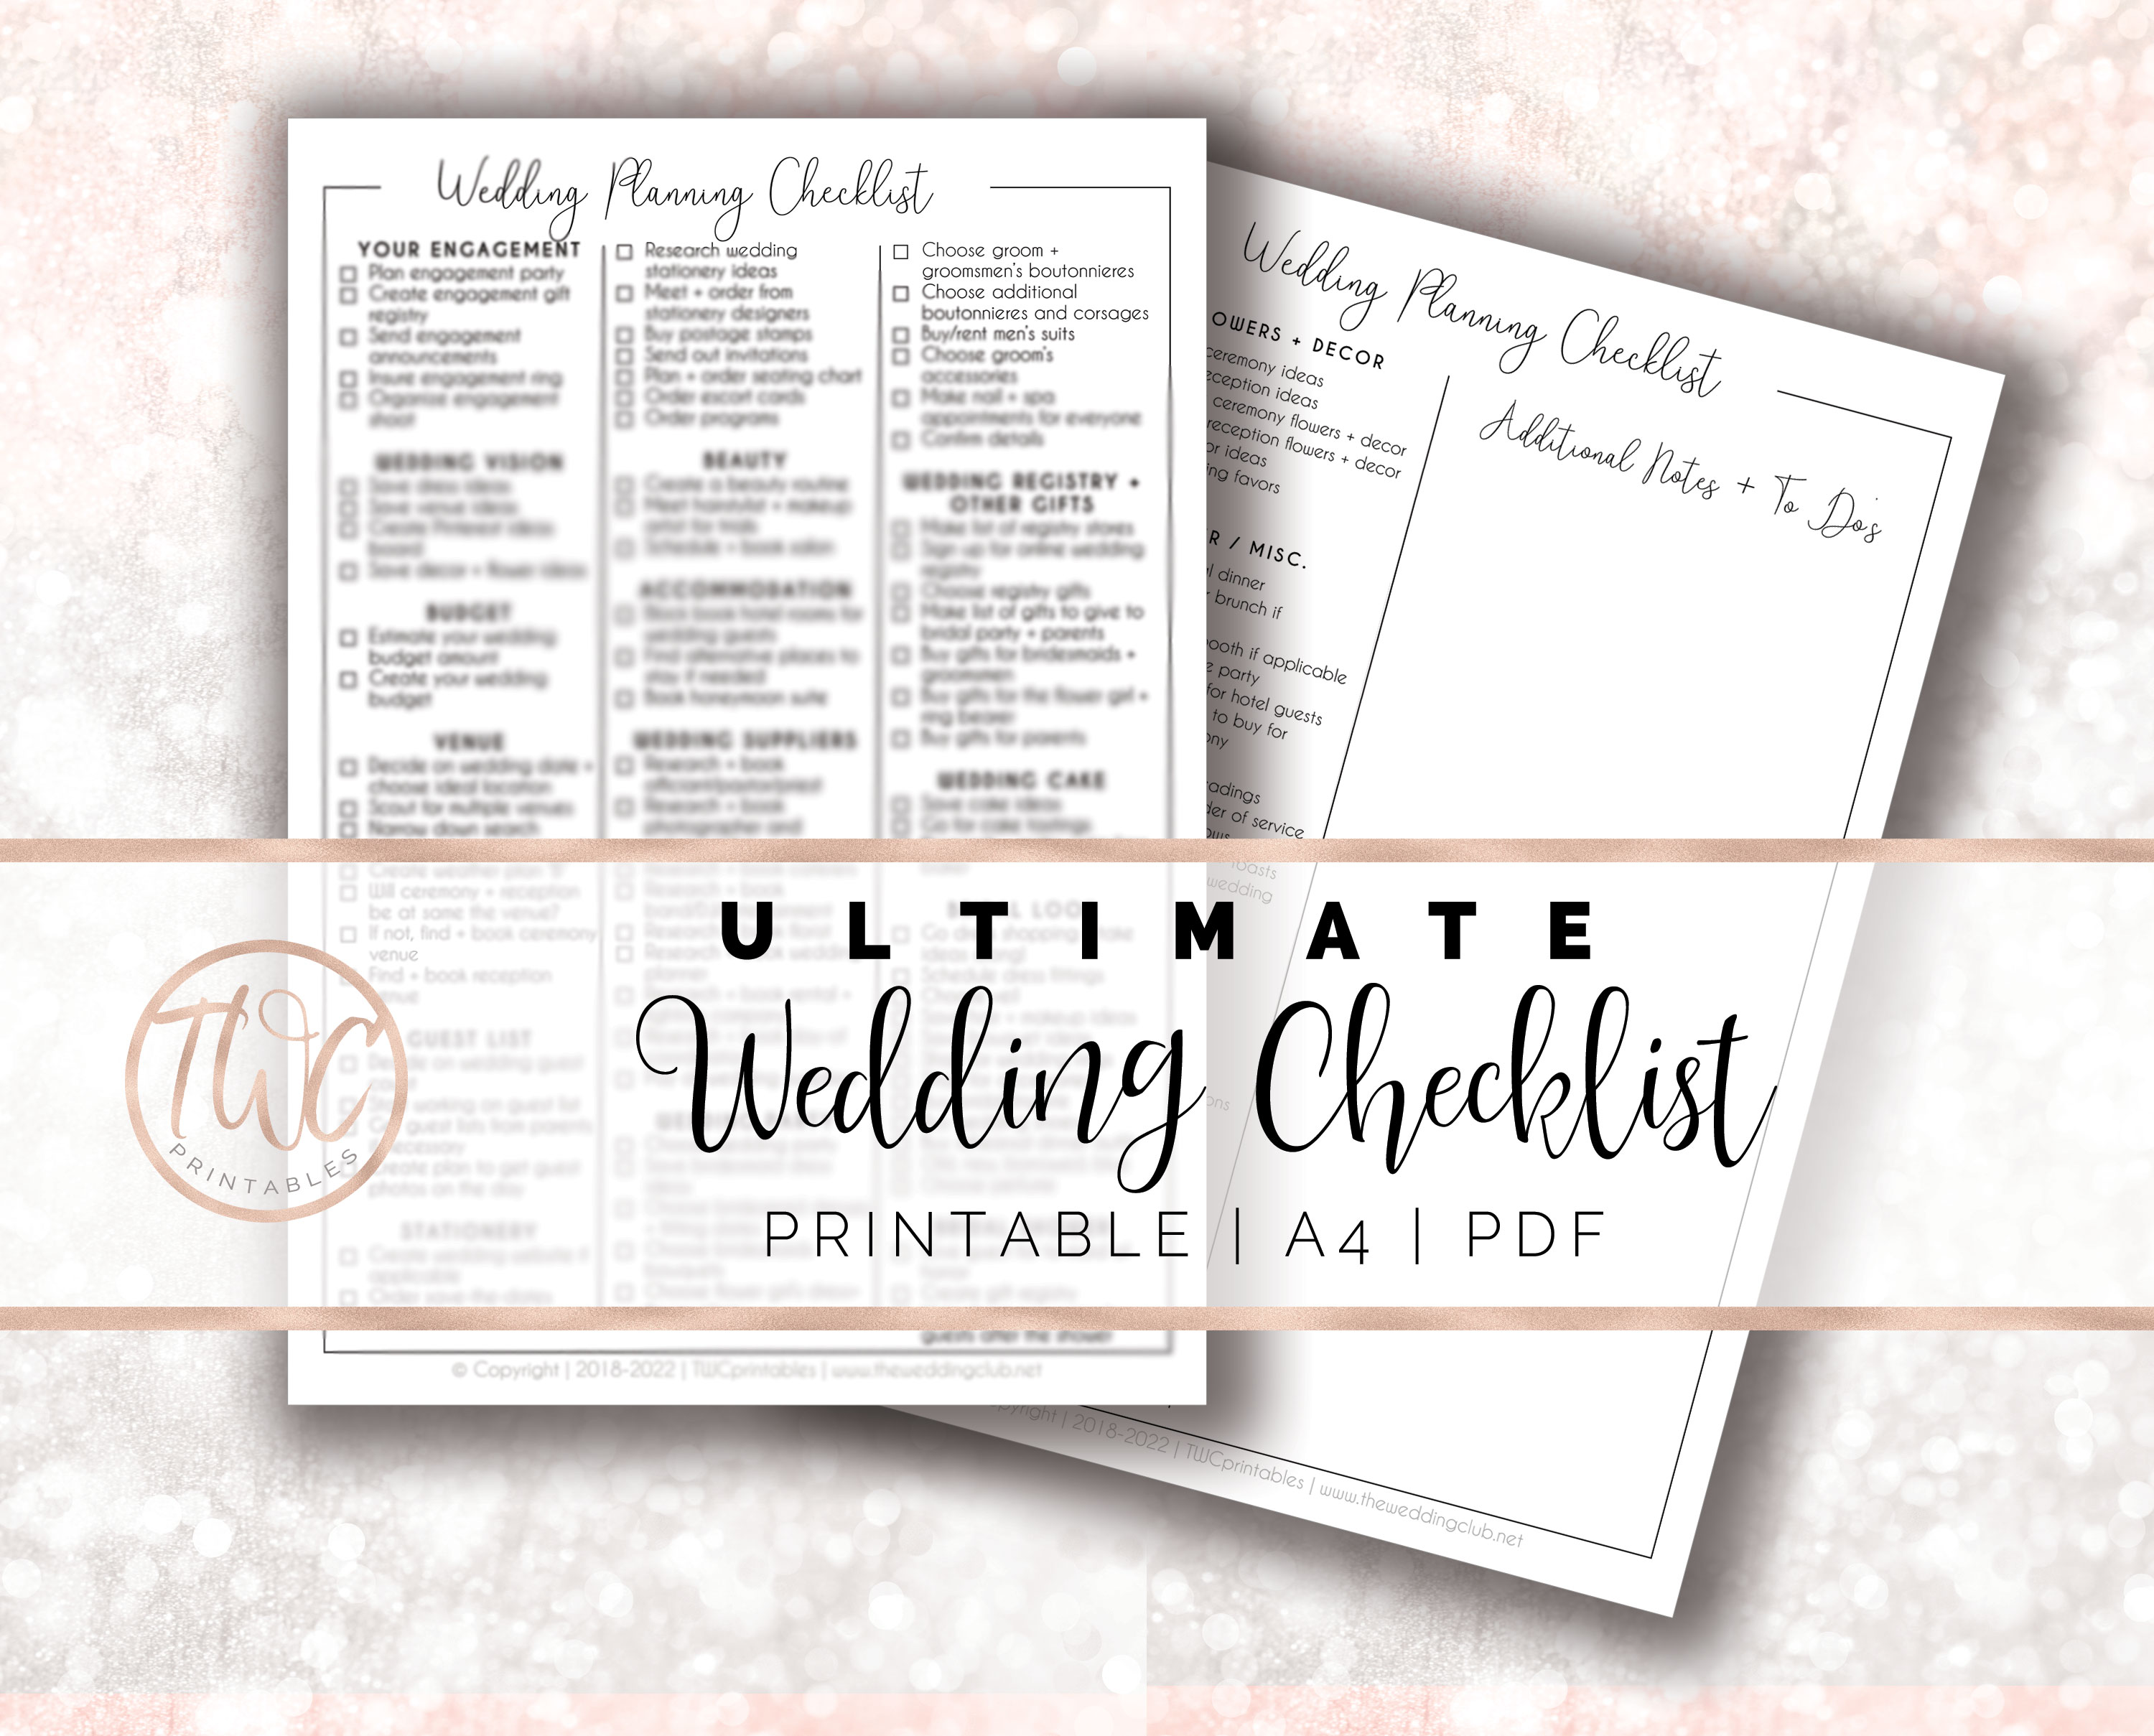 wedding checklist, wedding planning checklist, ultimate wedding checklist